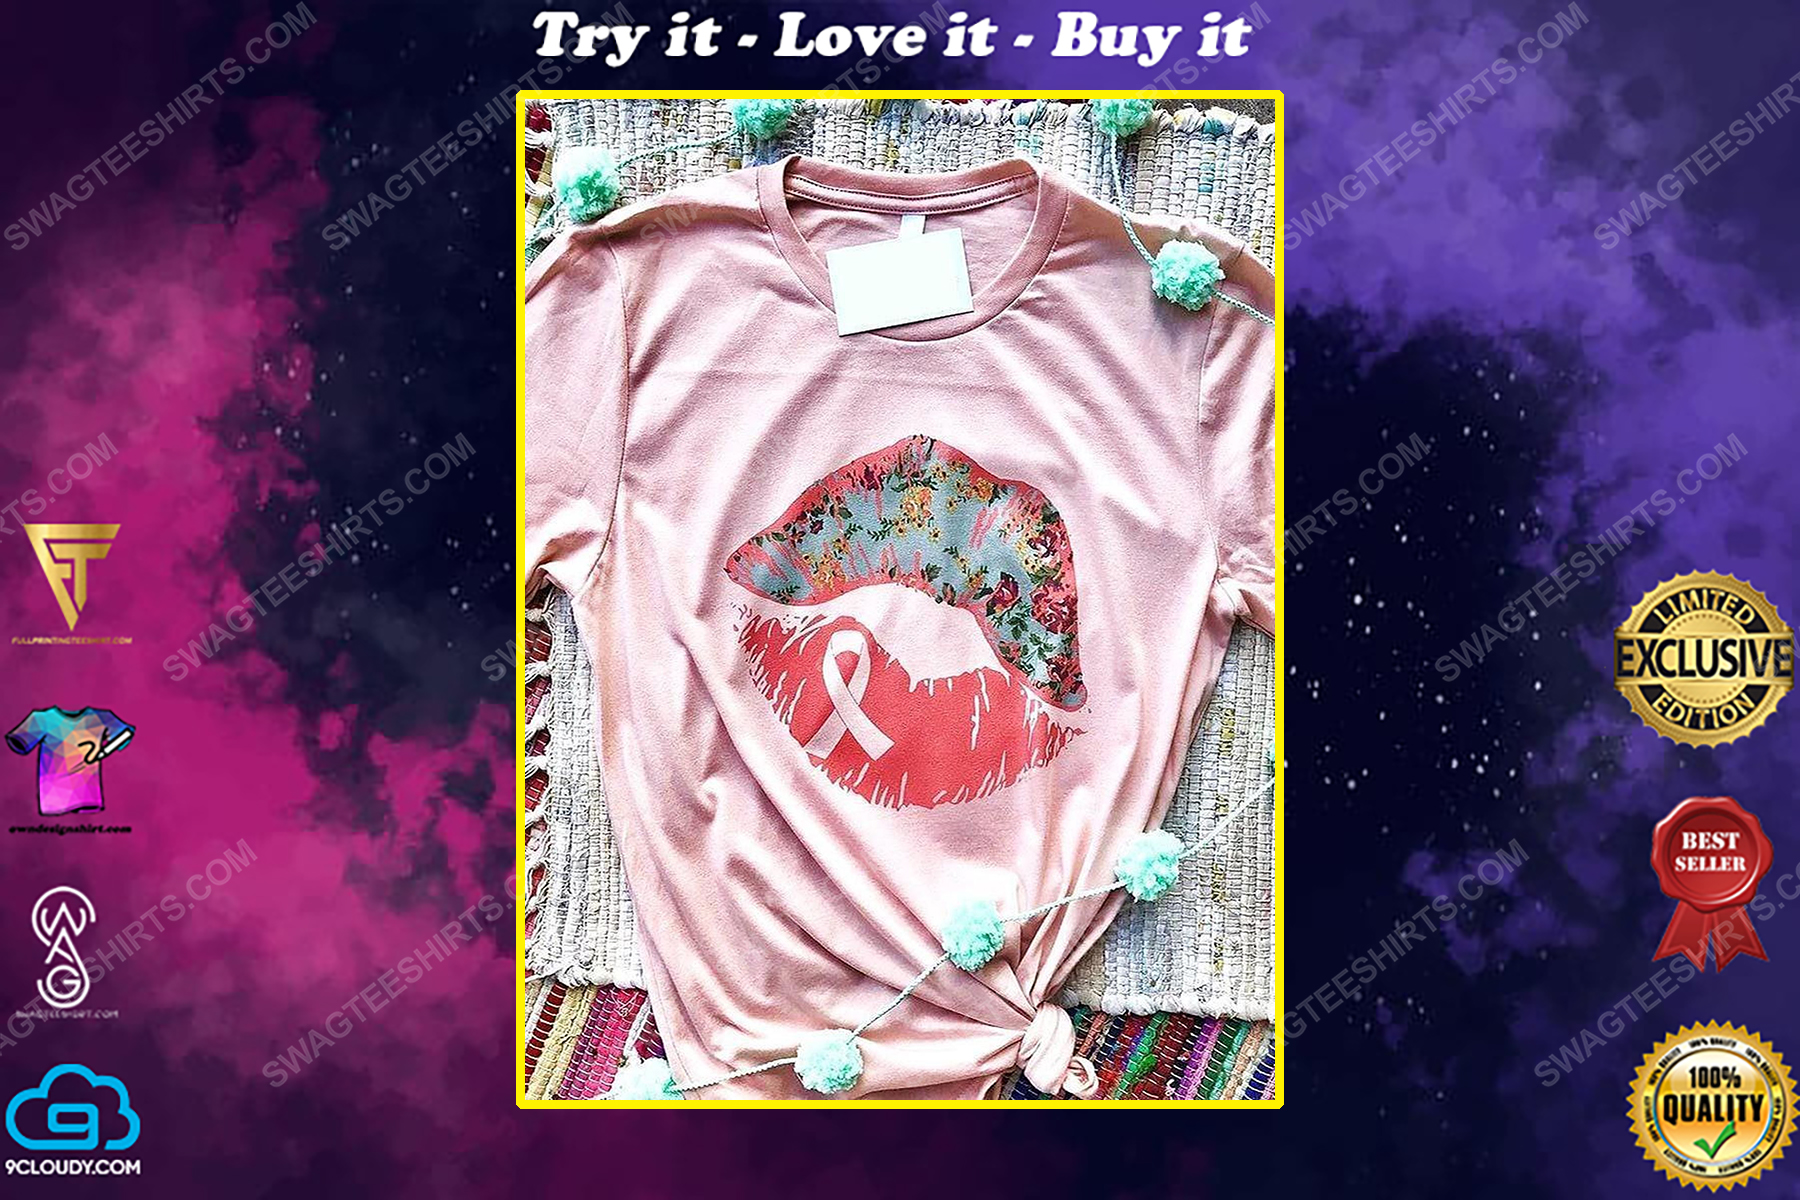 Breast cancer awareness in october we wear pink sexy lips ribbons shirt